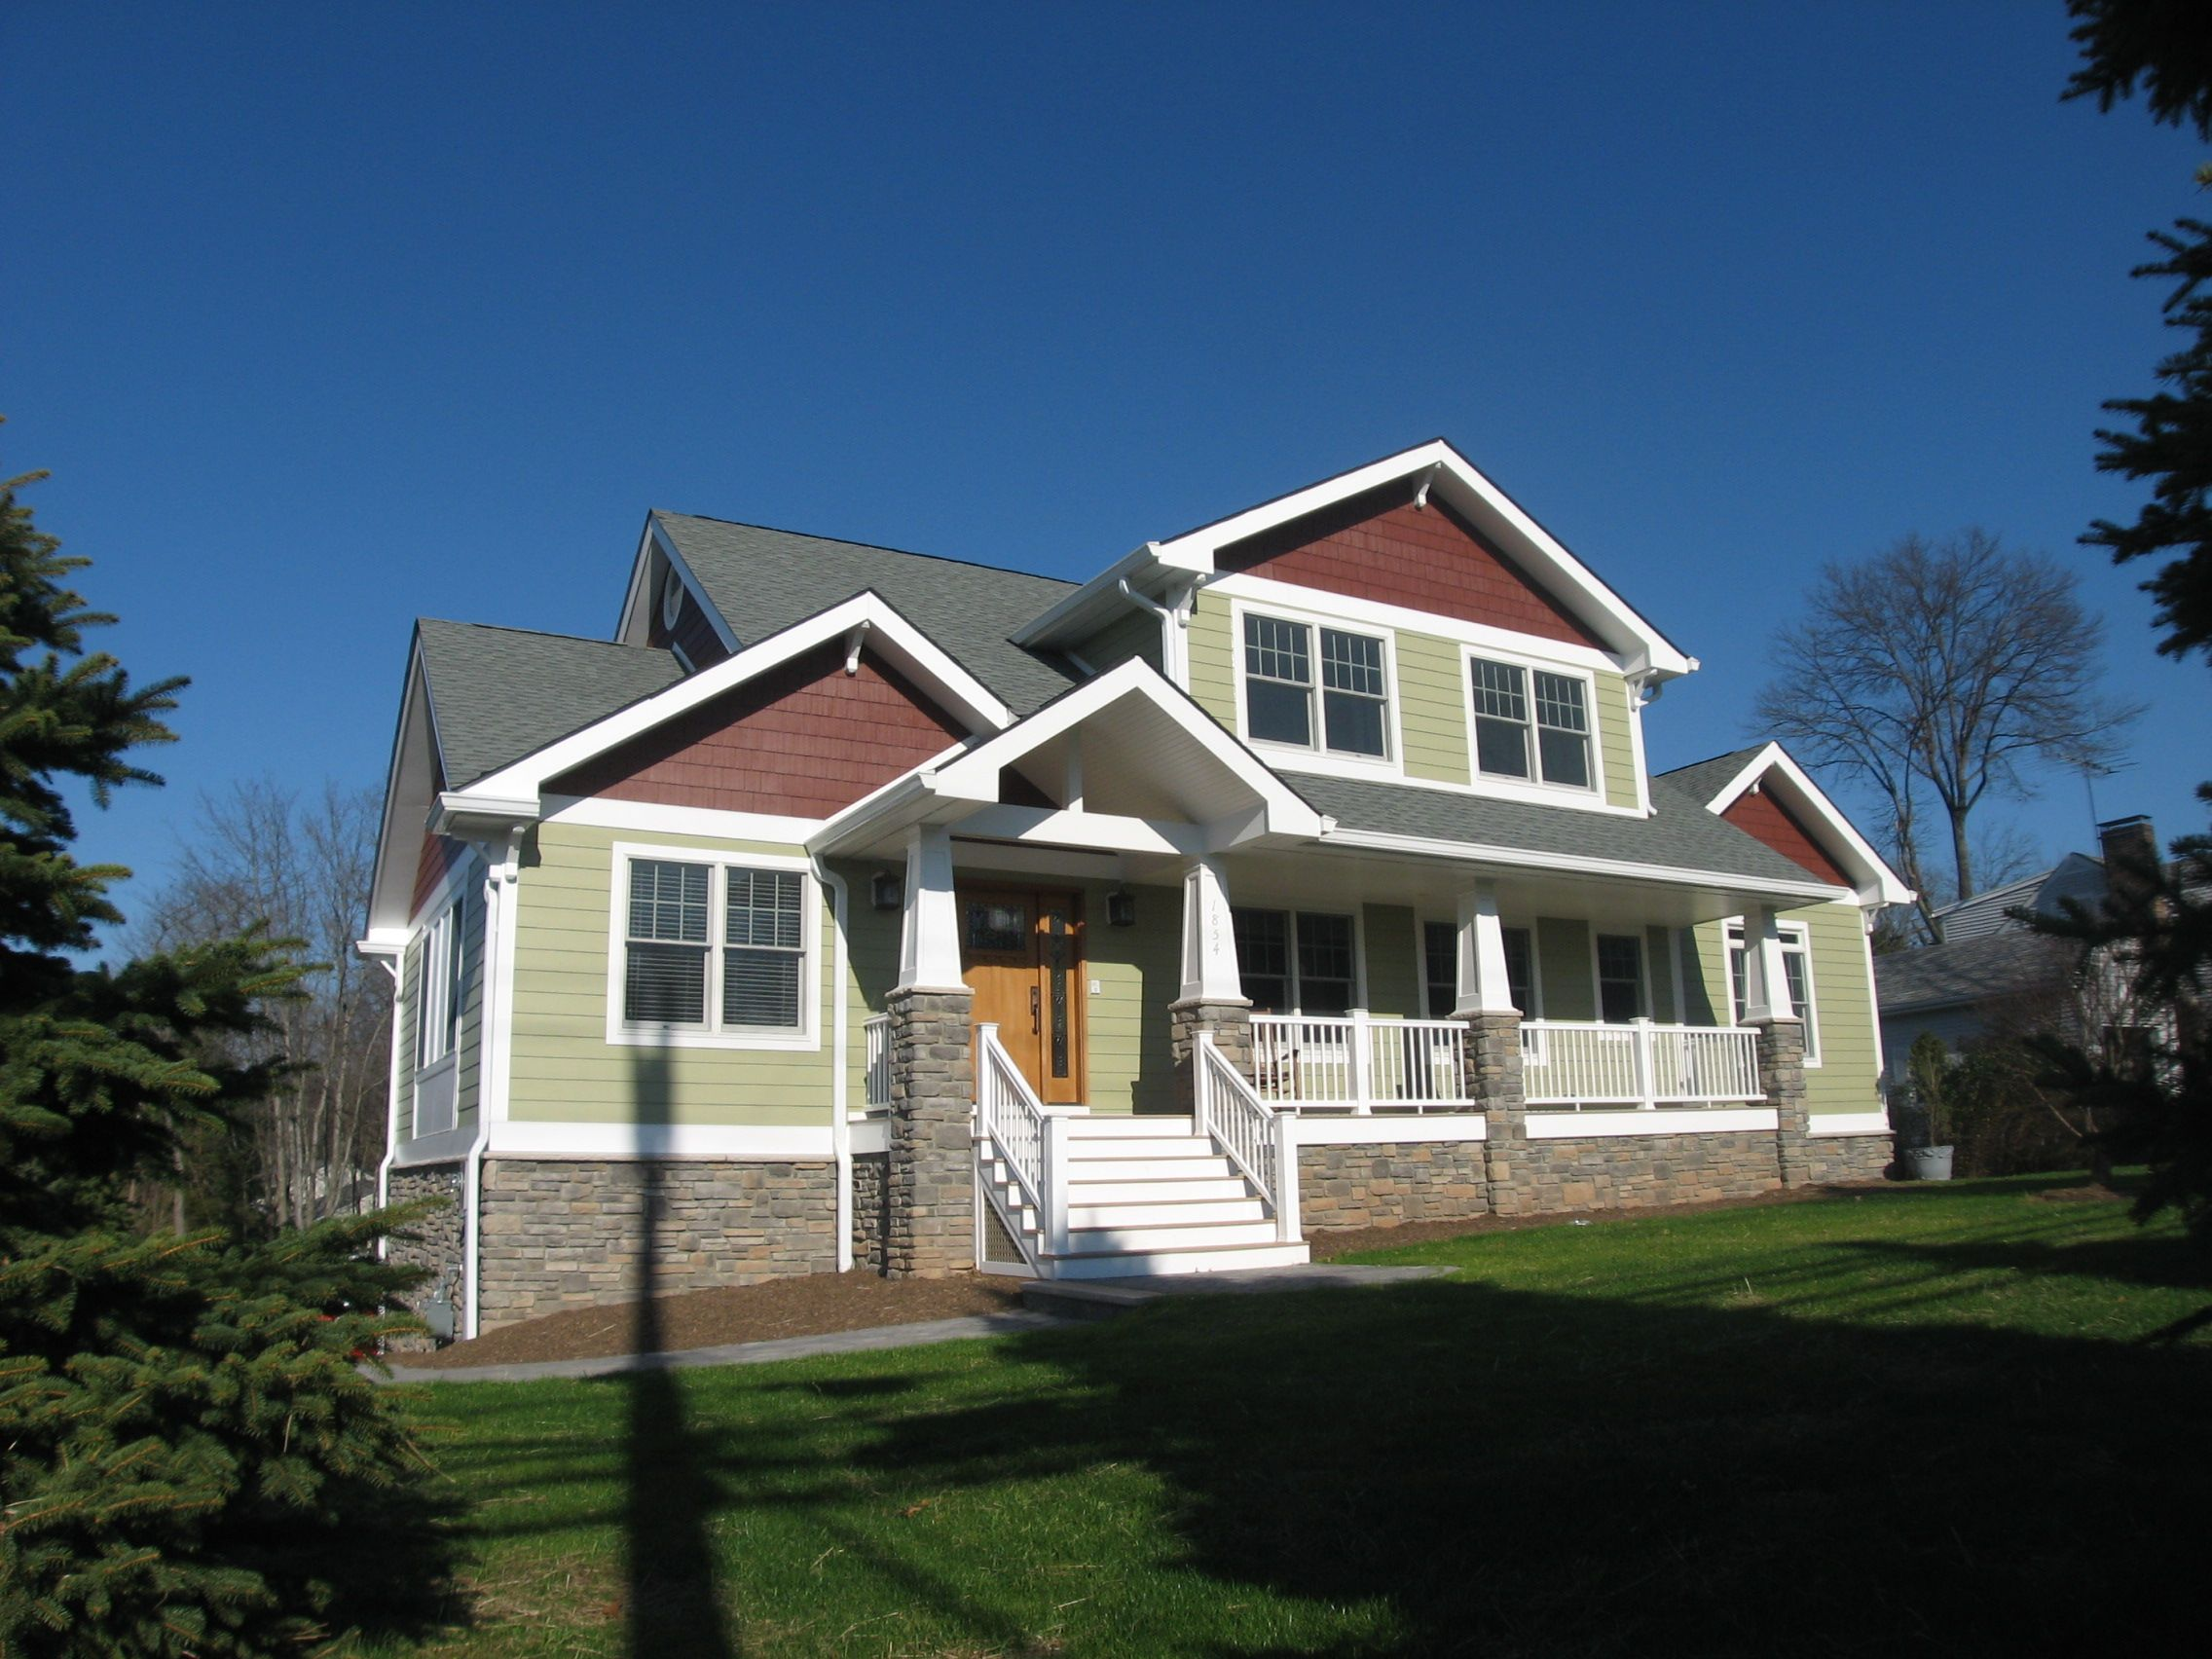 Craftsman style home with James Hardie Siding | Craftsman ...